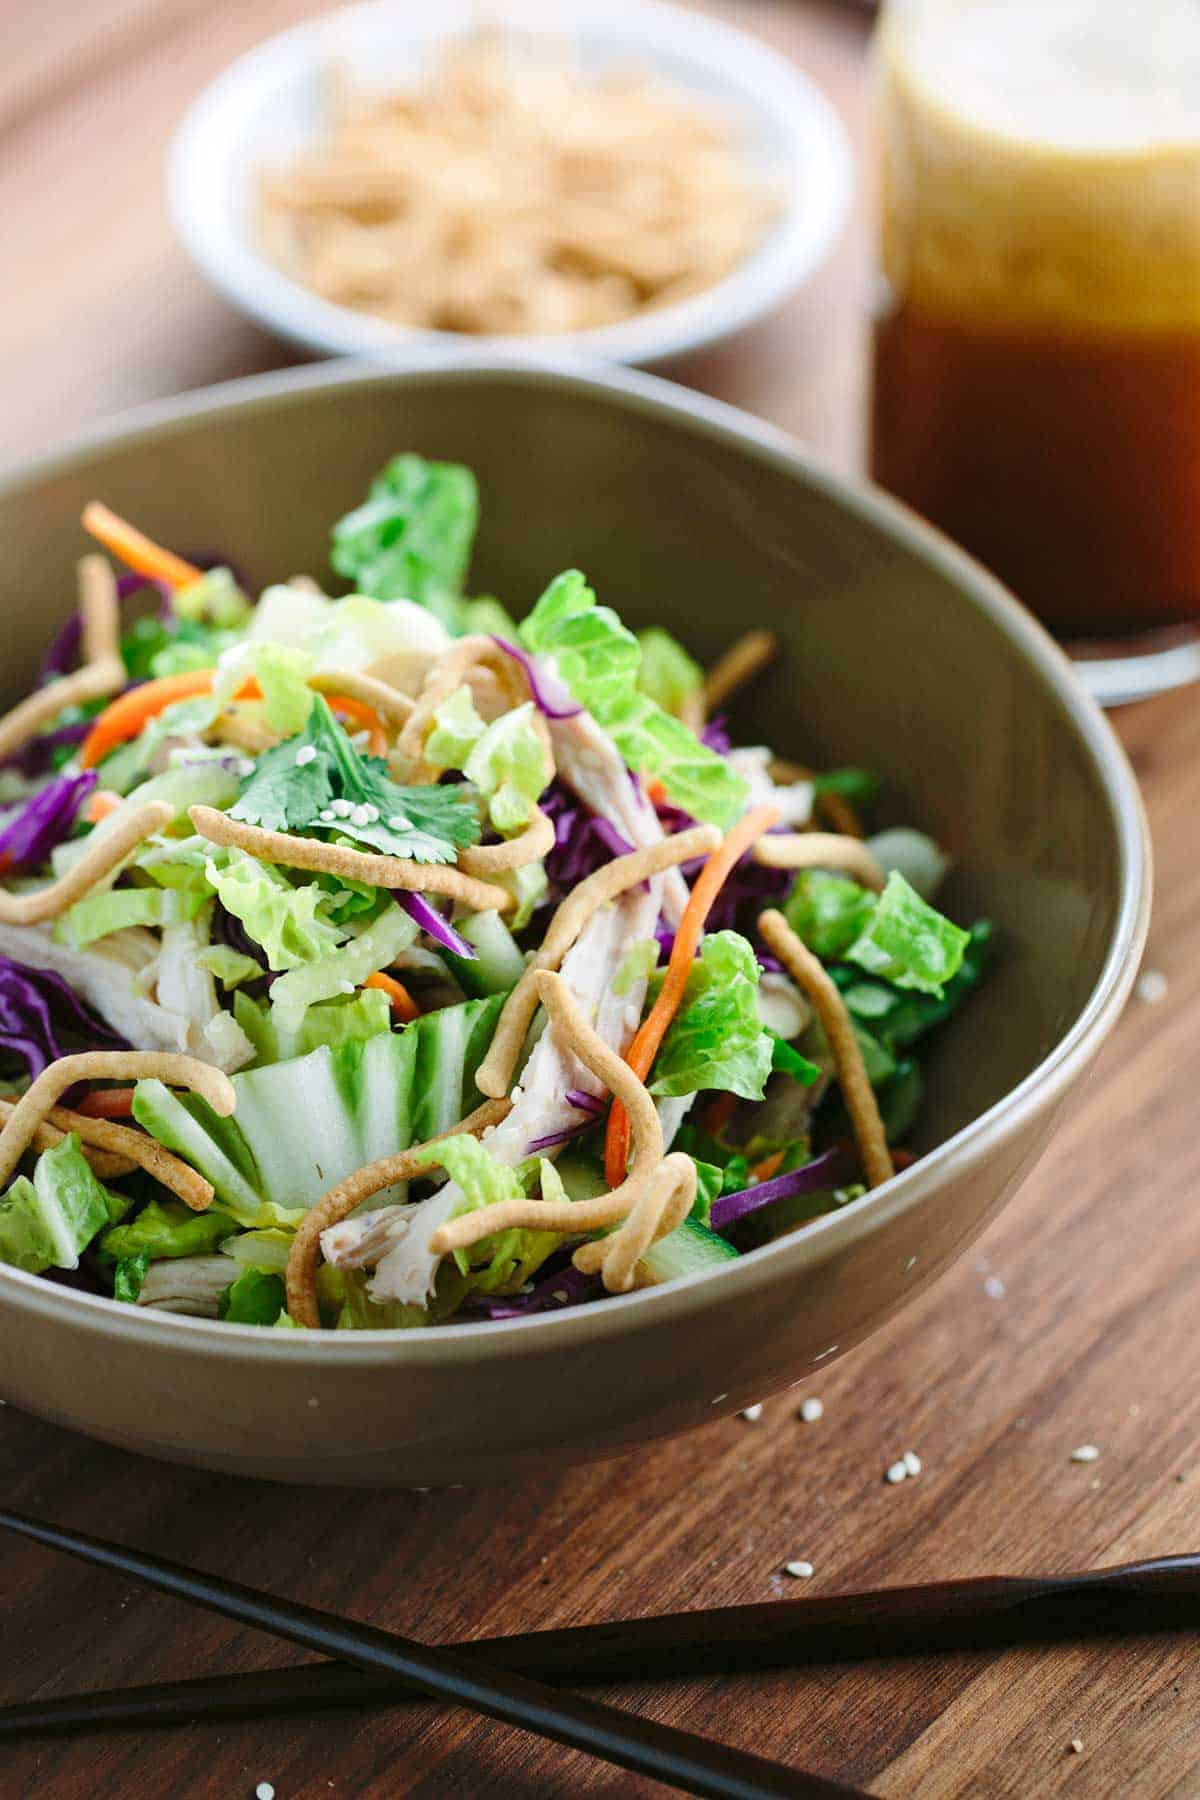 Healthy Chinese Chicken Recipes  Chinese Chicken Salad with Vinaigrette Dressing